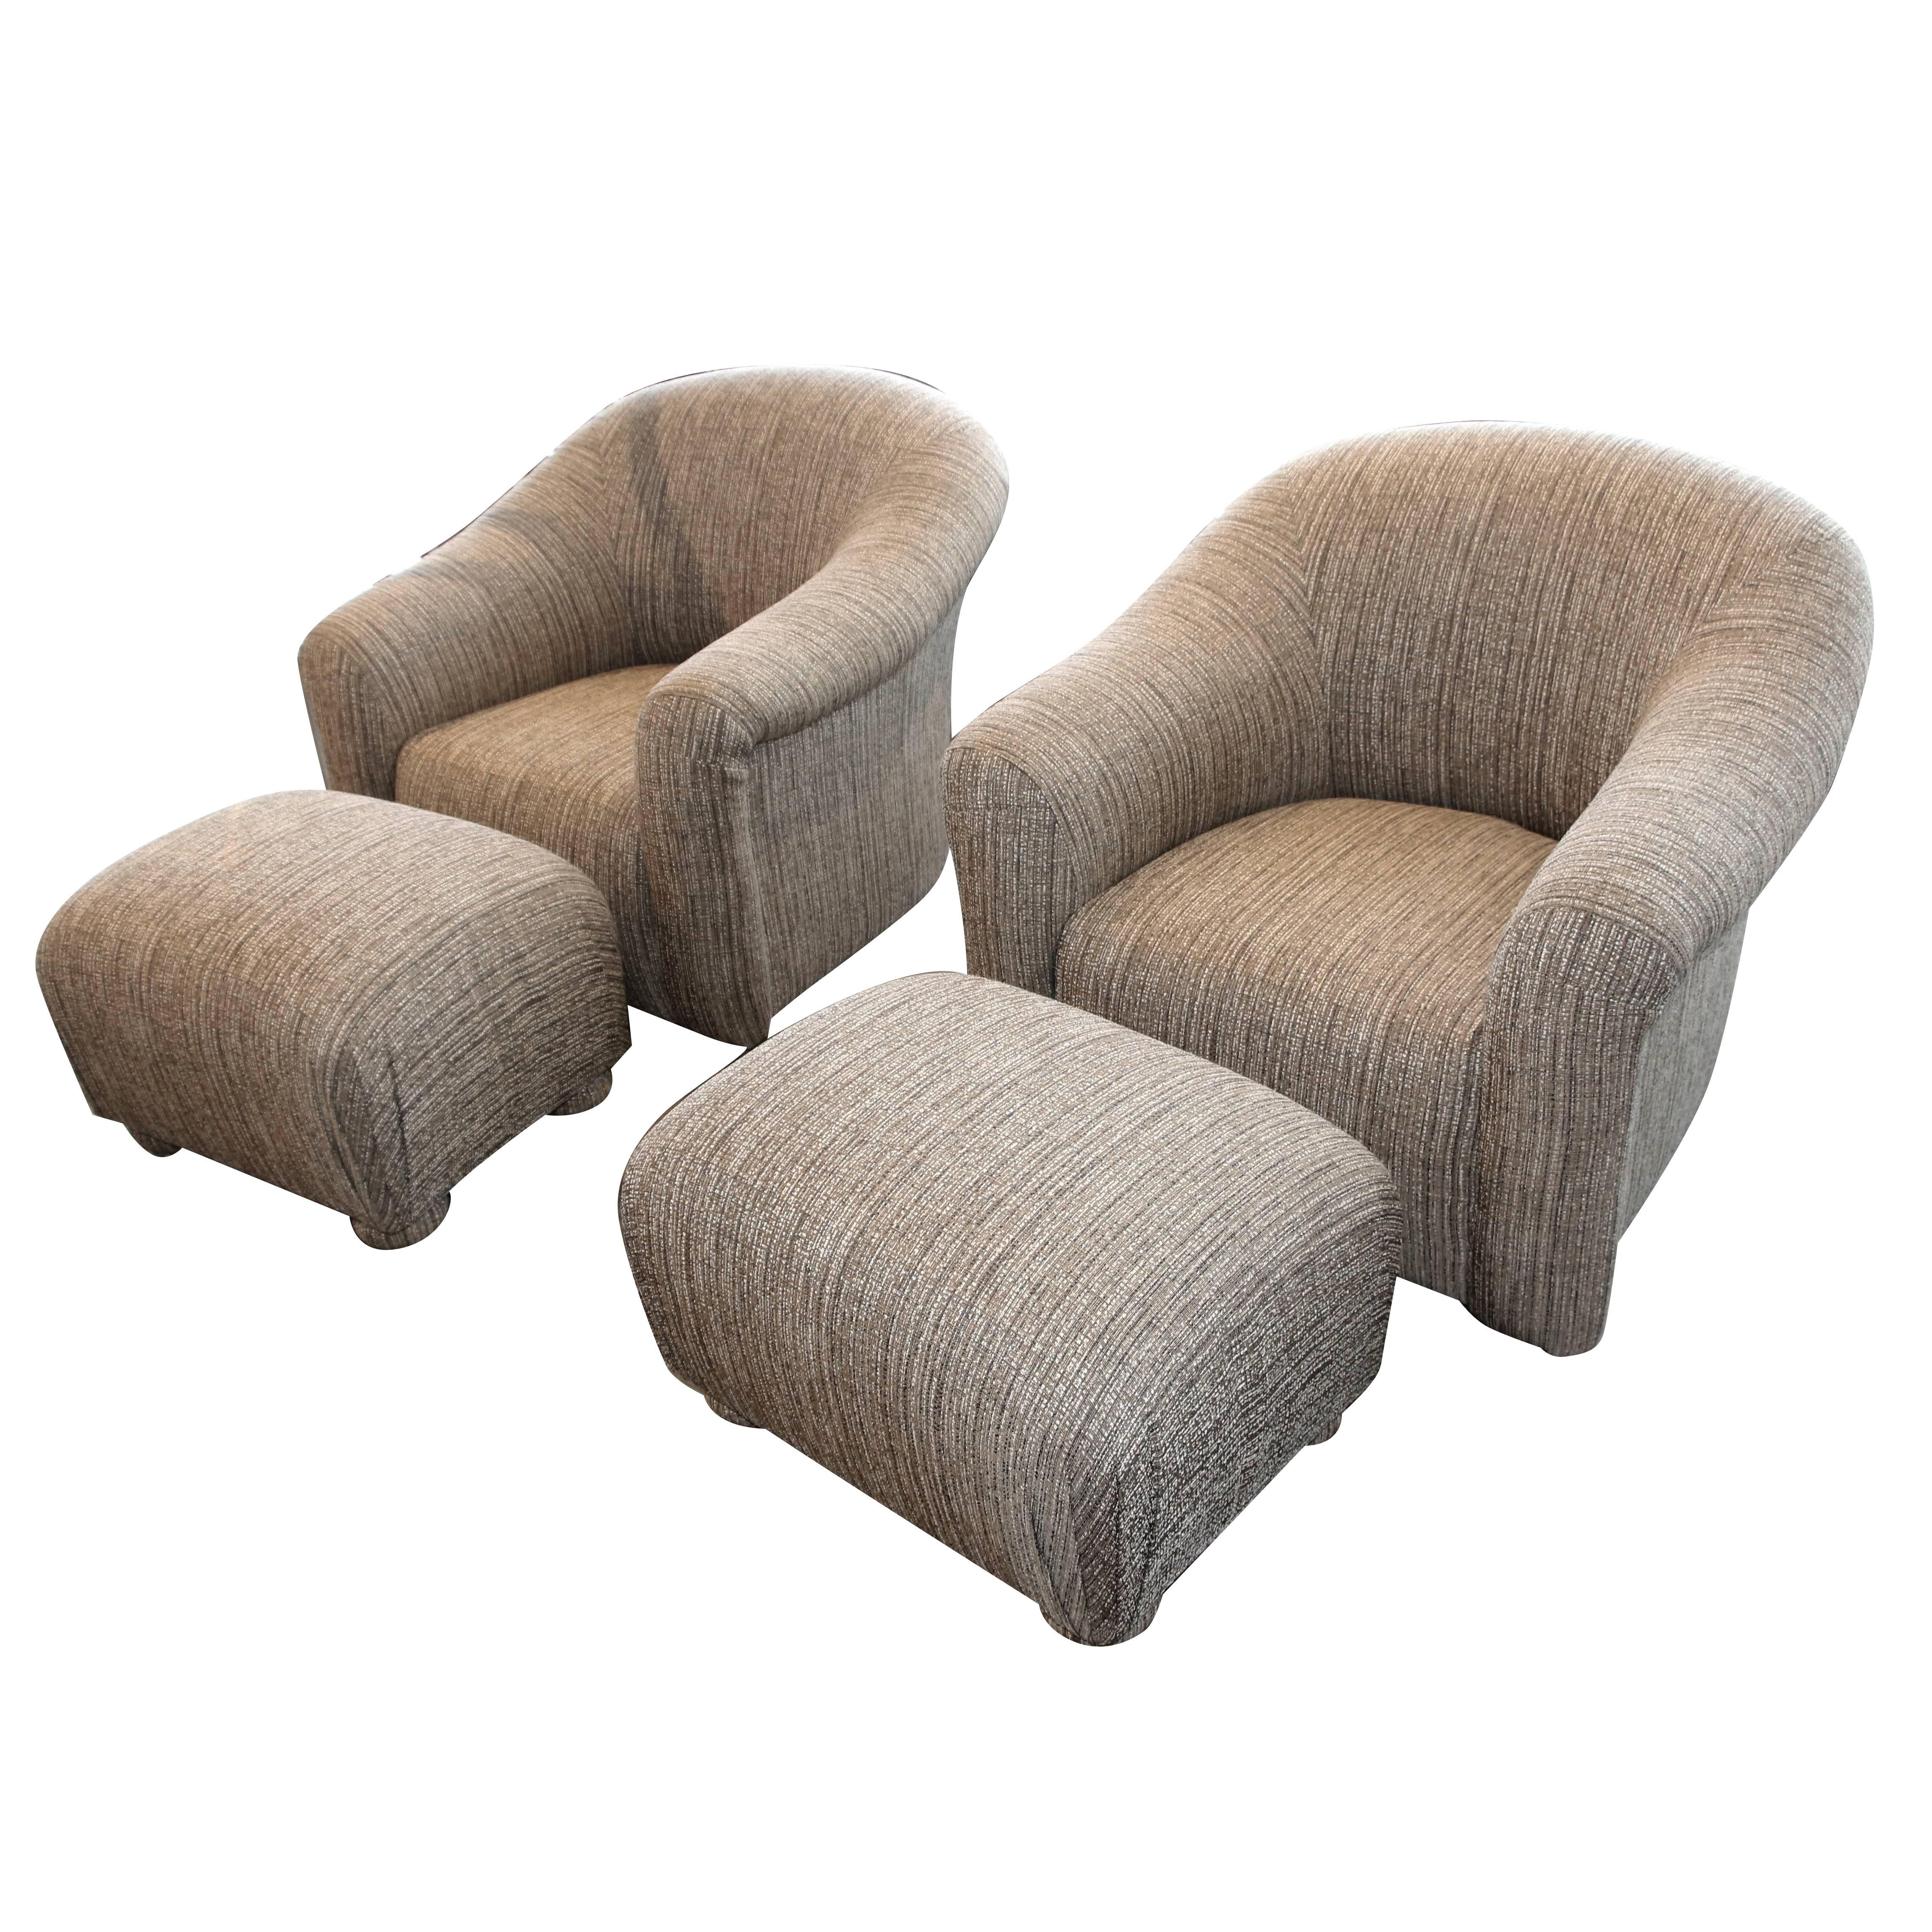 Chairs Comfortable Pair Of Comfortable Swivel A Rudin Chairs And Matching Ottomans